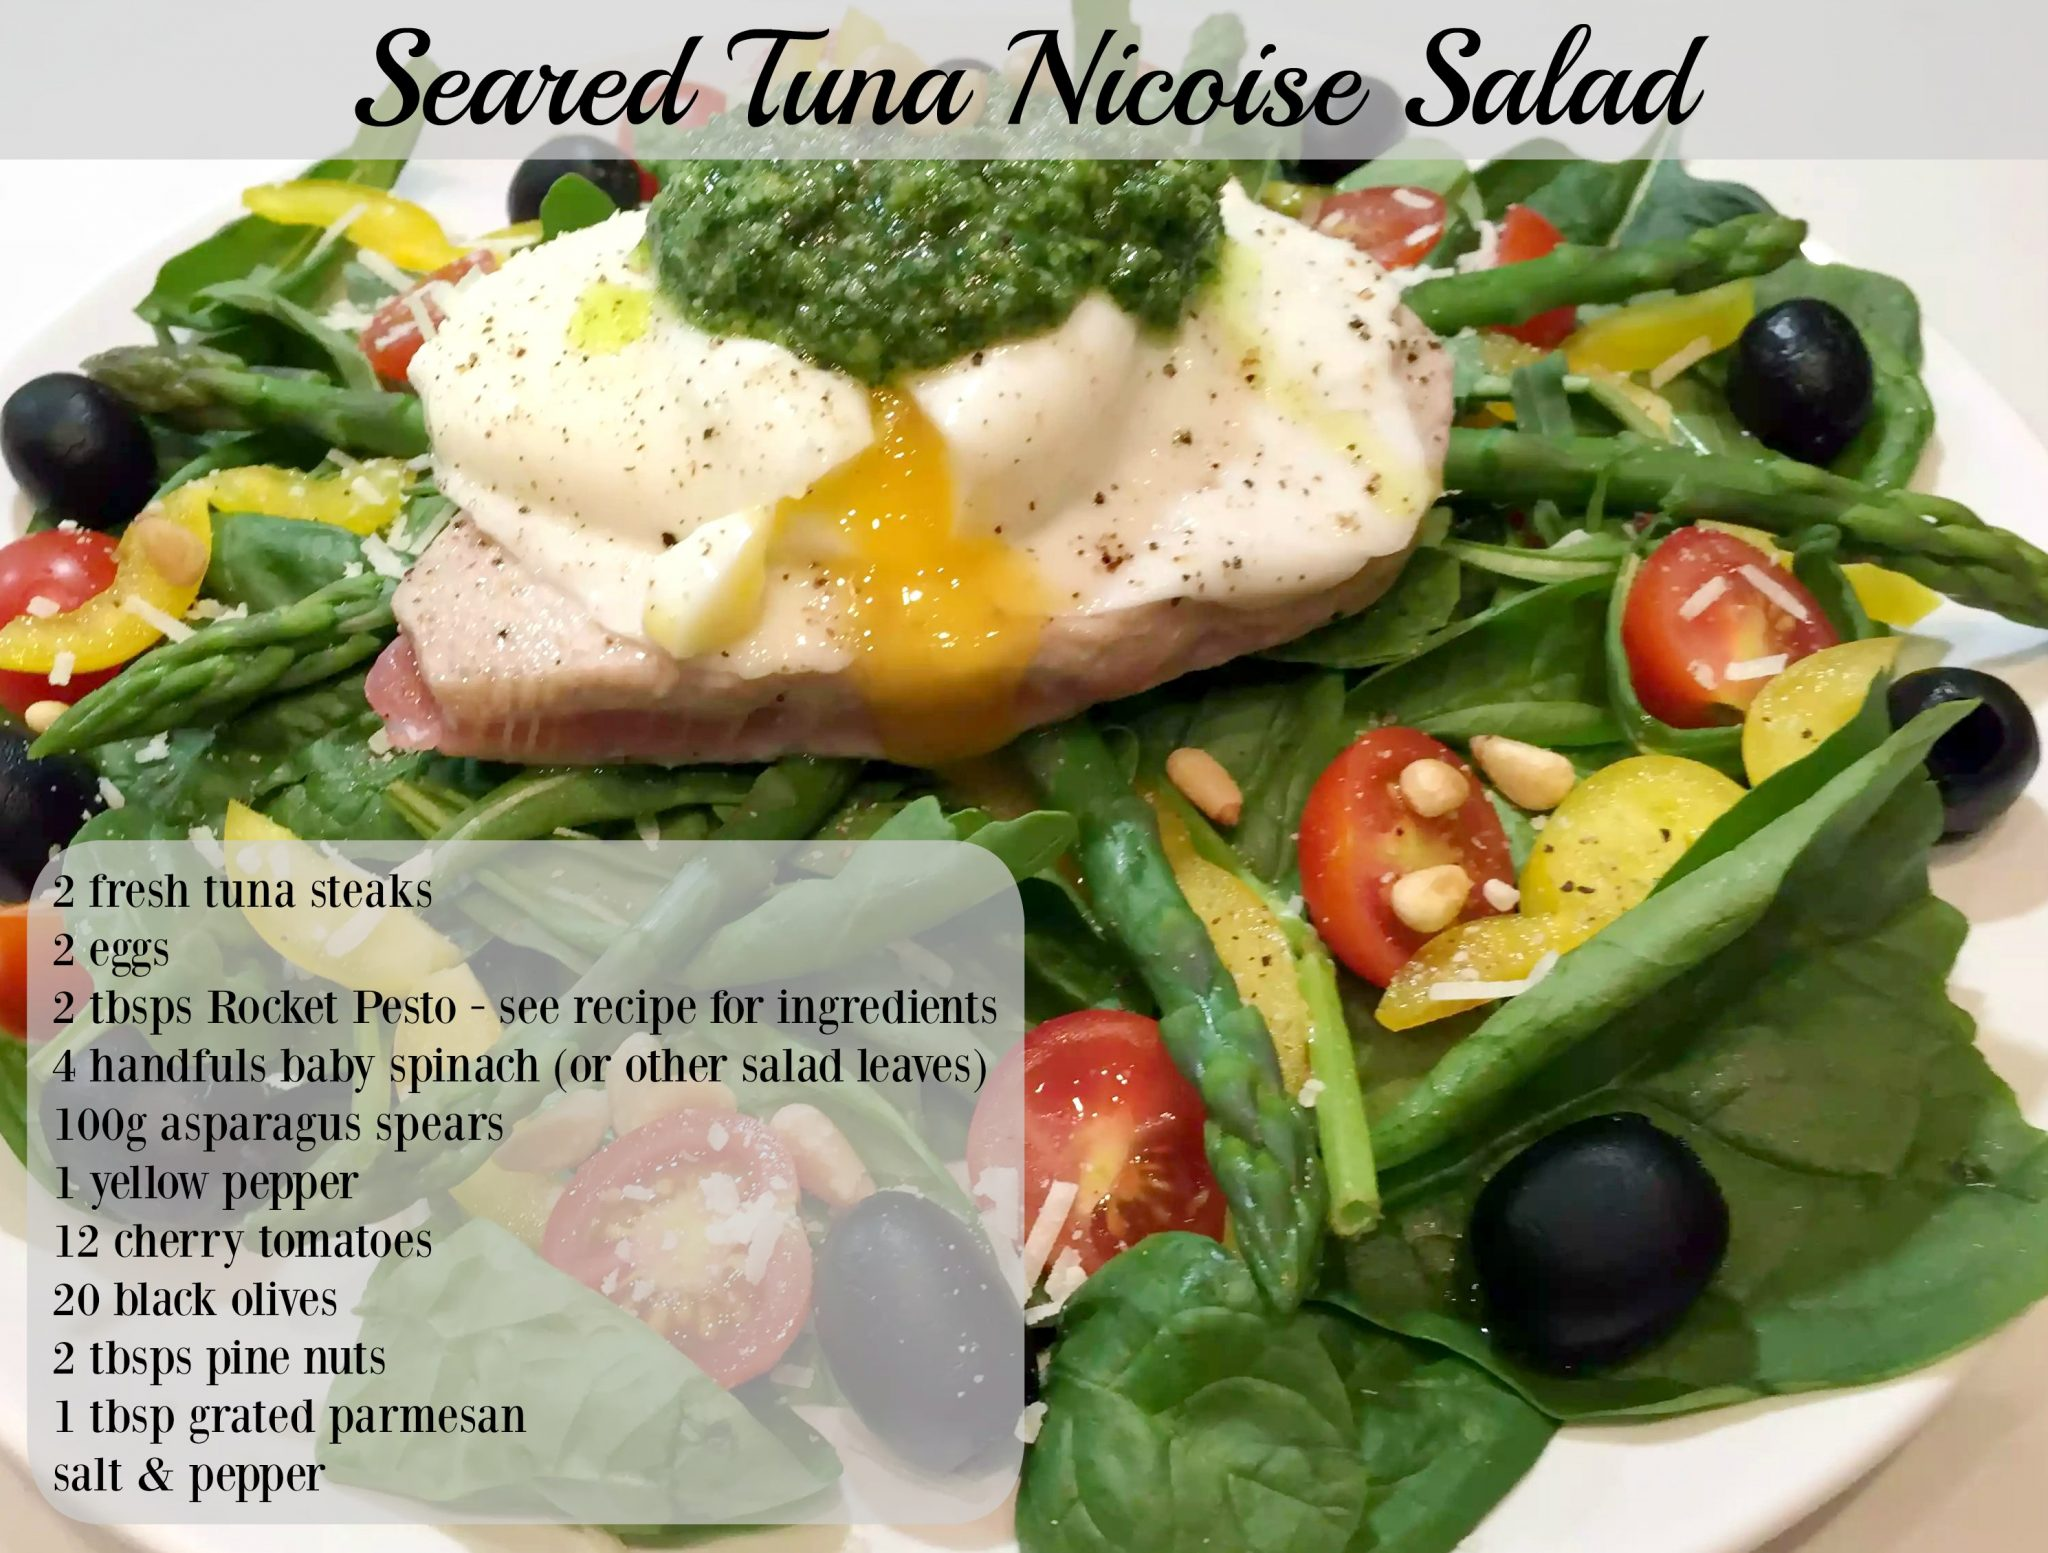 Seared Tuna Nicoise Salad with Poached Egg & Rocket Pesto by Emma Eats & Explores - SCD, Paleo, Pecatarian, Dairy-Free, Gluten-Free, Grain-Free, Sugar-Free, Clean Eating